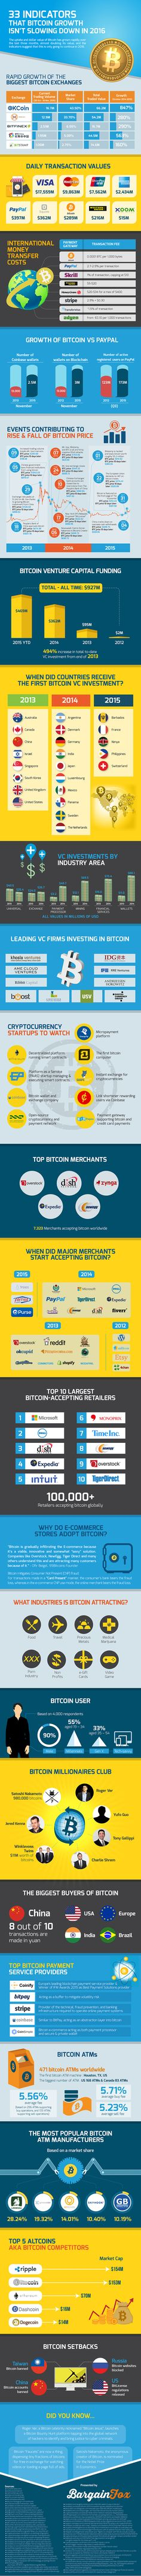 Why Bitcoin Will Continue to Grow in 2016 #infographic #Finance #Bitcoin